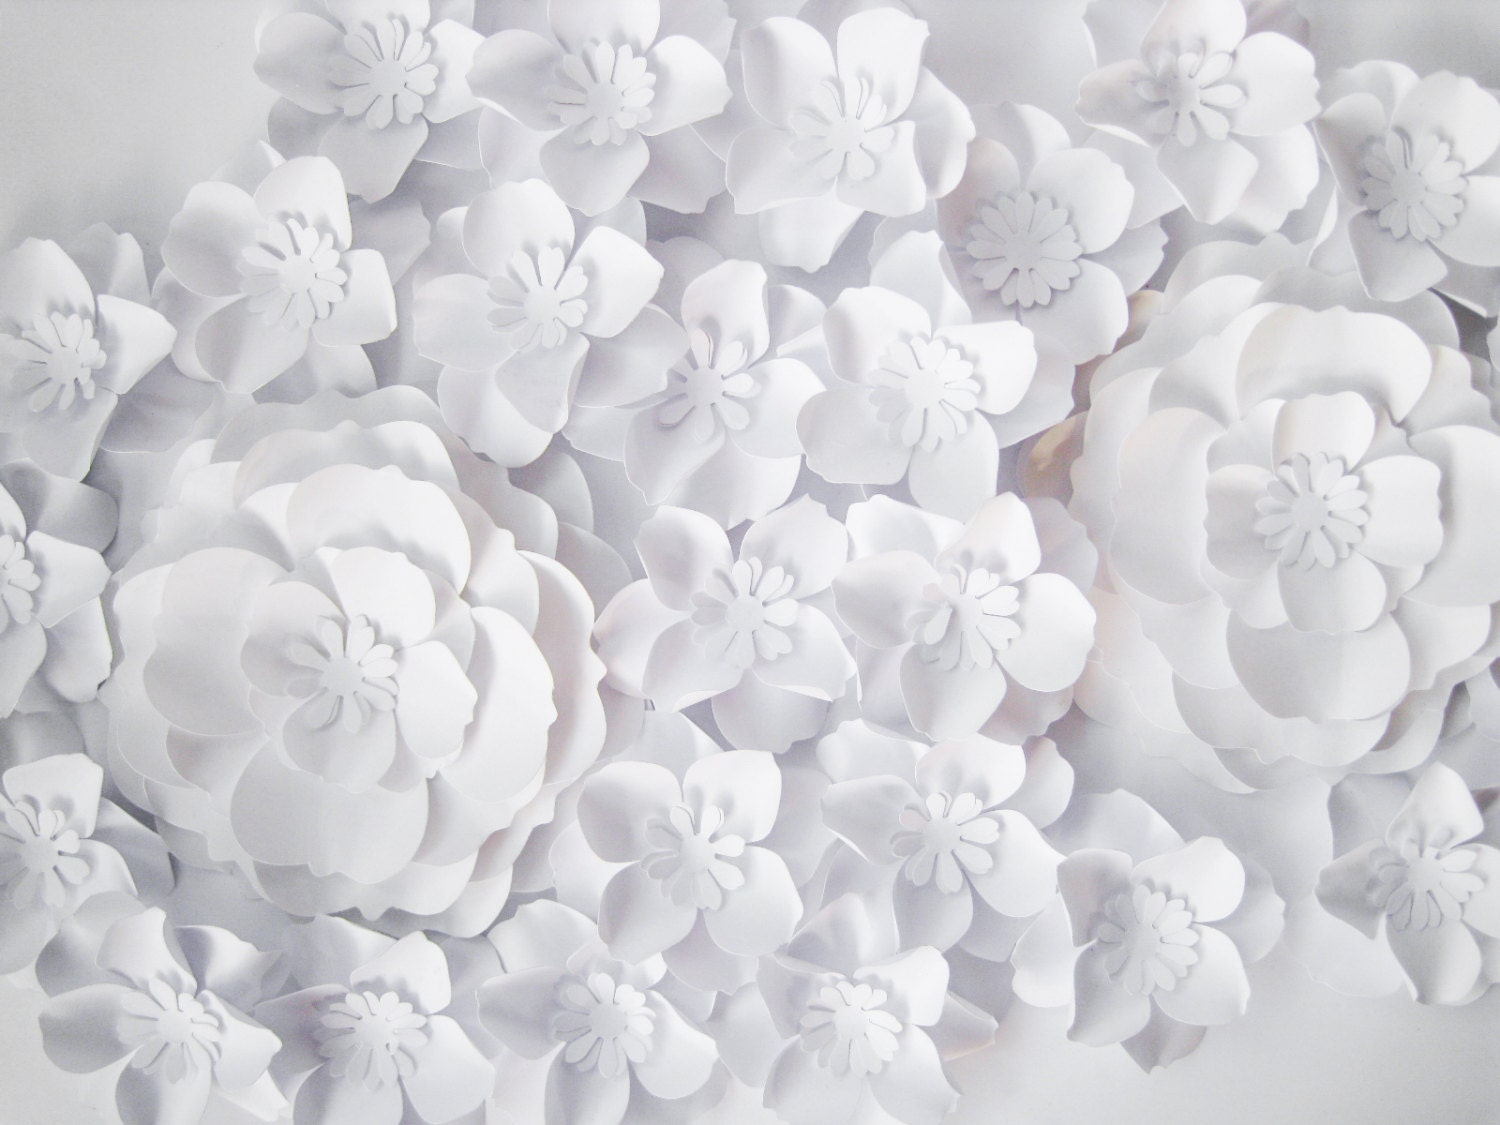 27 White Paper Flowers Backdrop Small Paper Flowers Wedding Arch